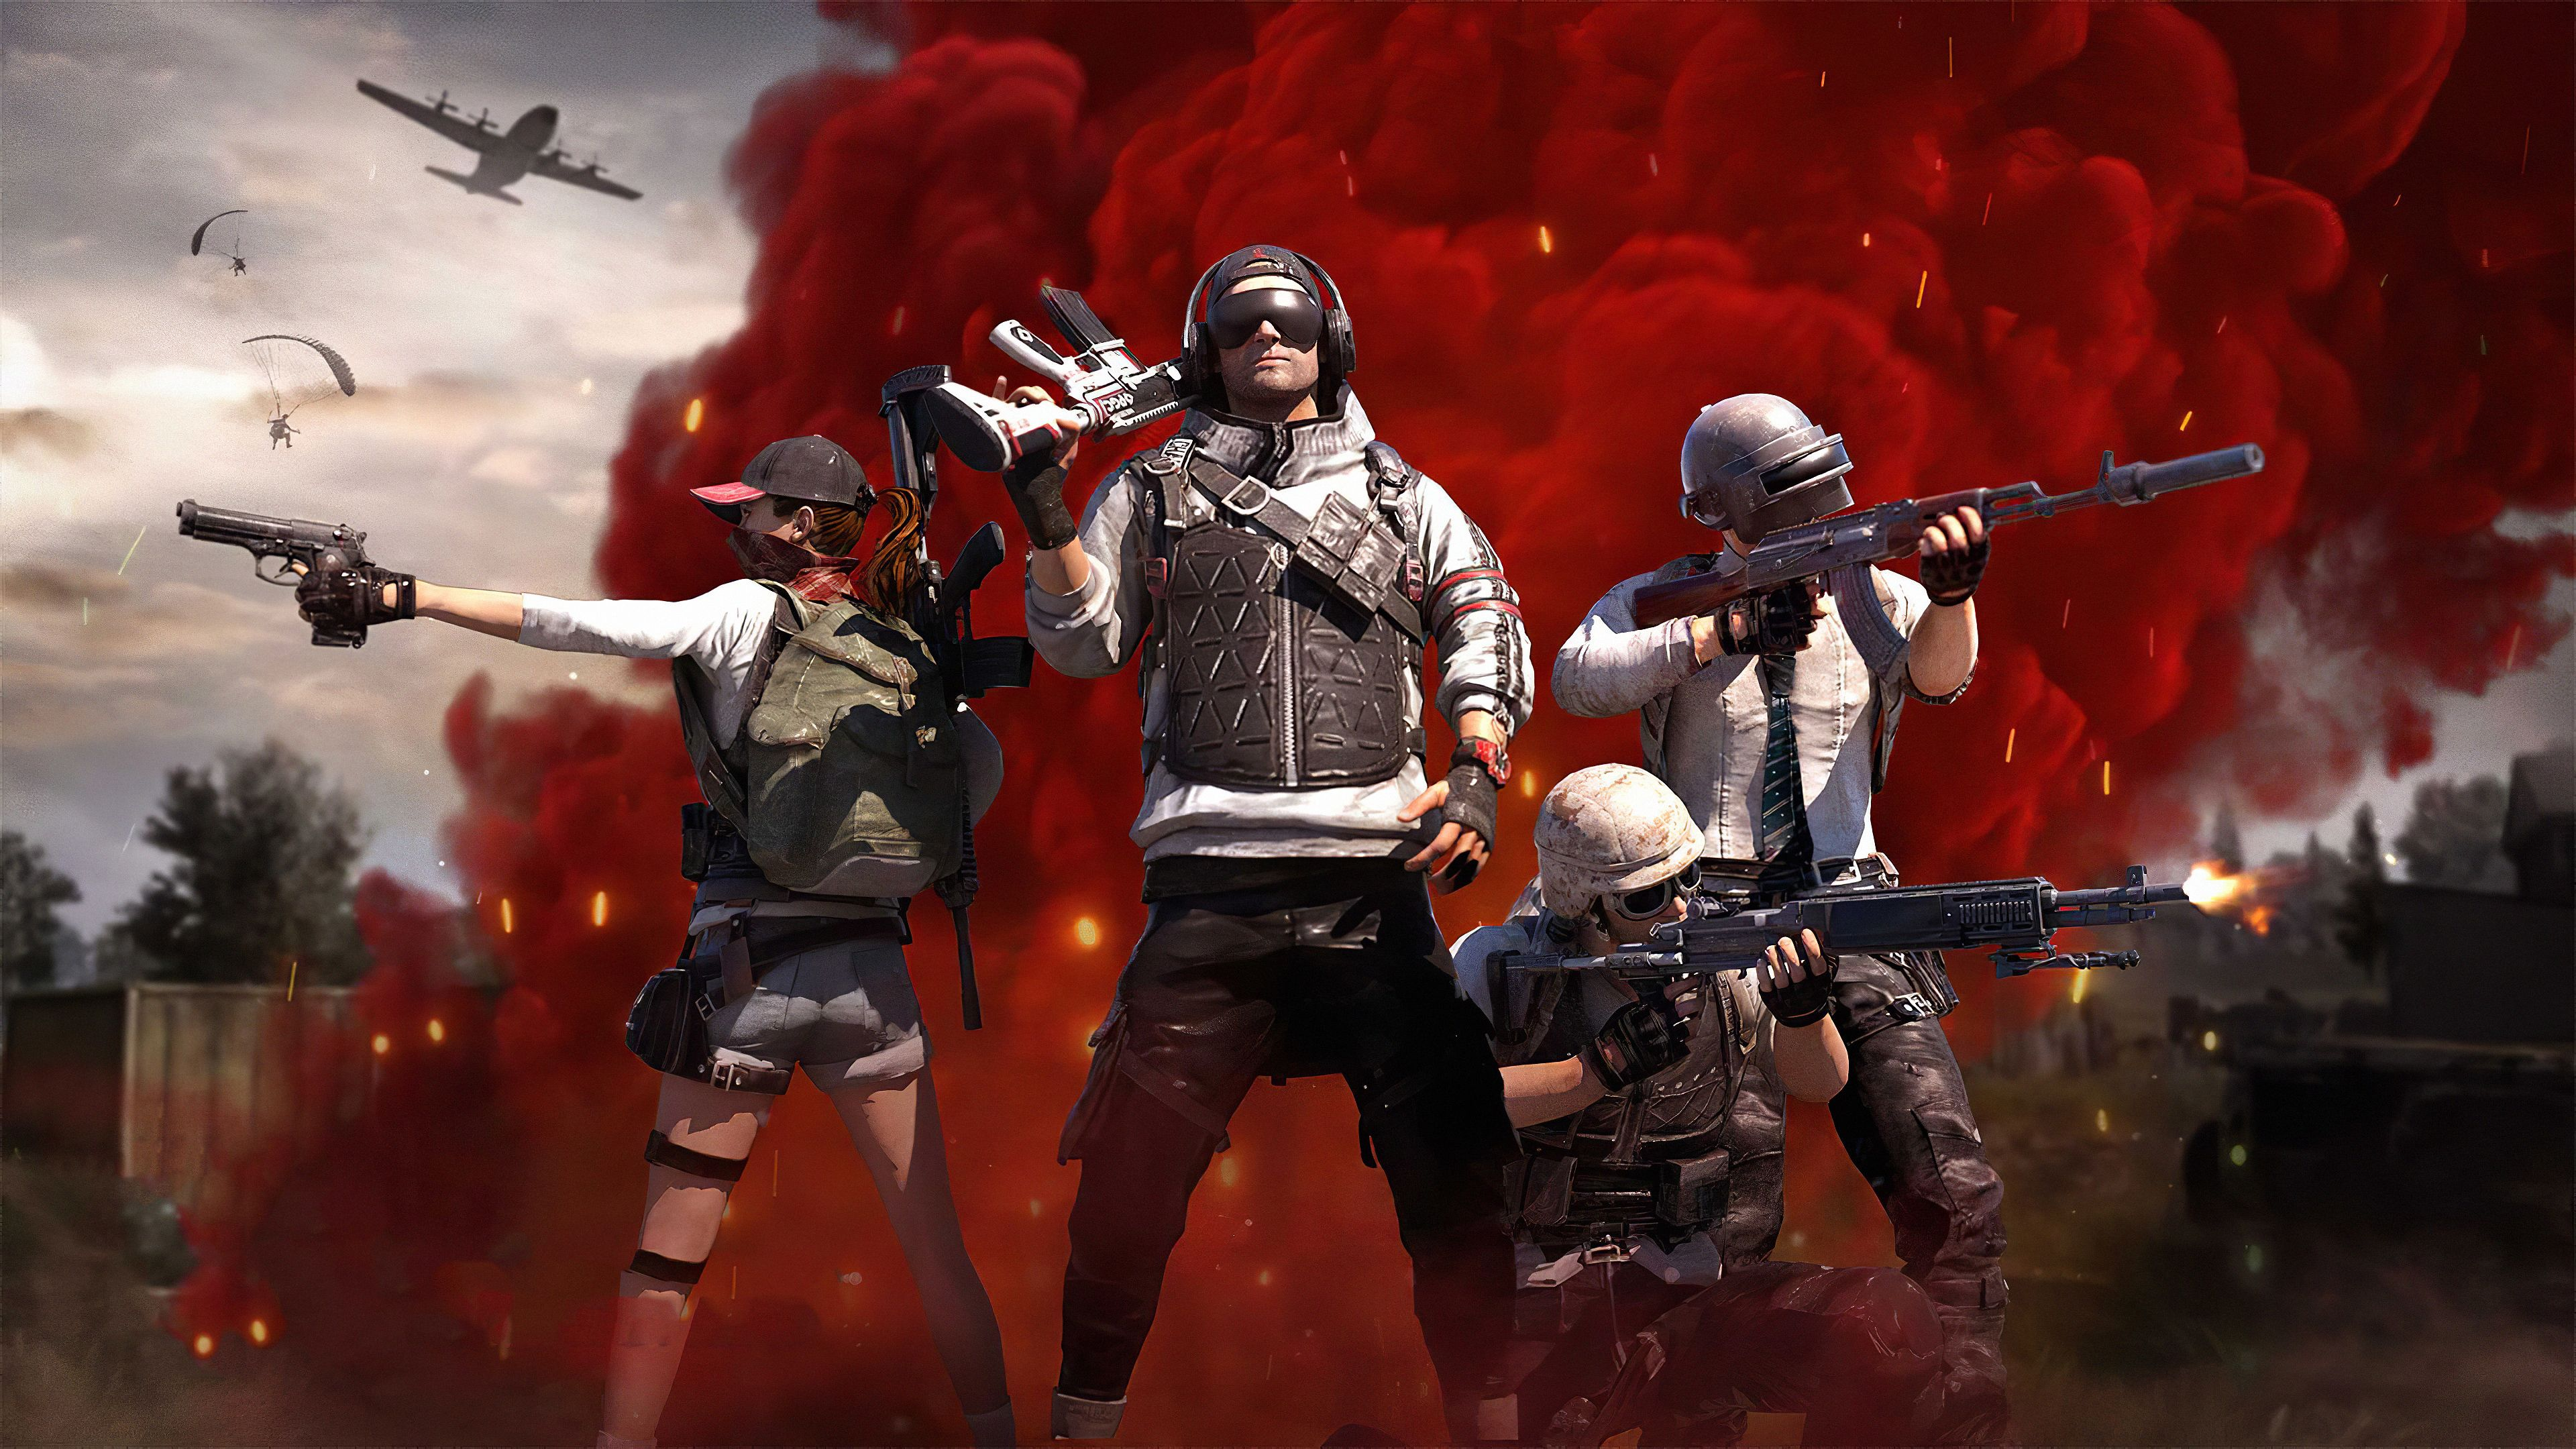 Playerunknown S Battlegrounds Pubg Game 4k Ultra Hd Mobile Wallpaper Mobile Wallpaper Android Gaming Wallpapers Mobile Wallpaper